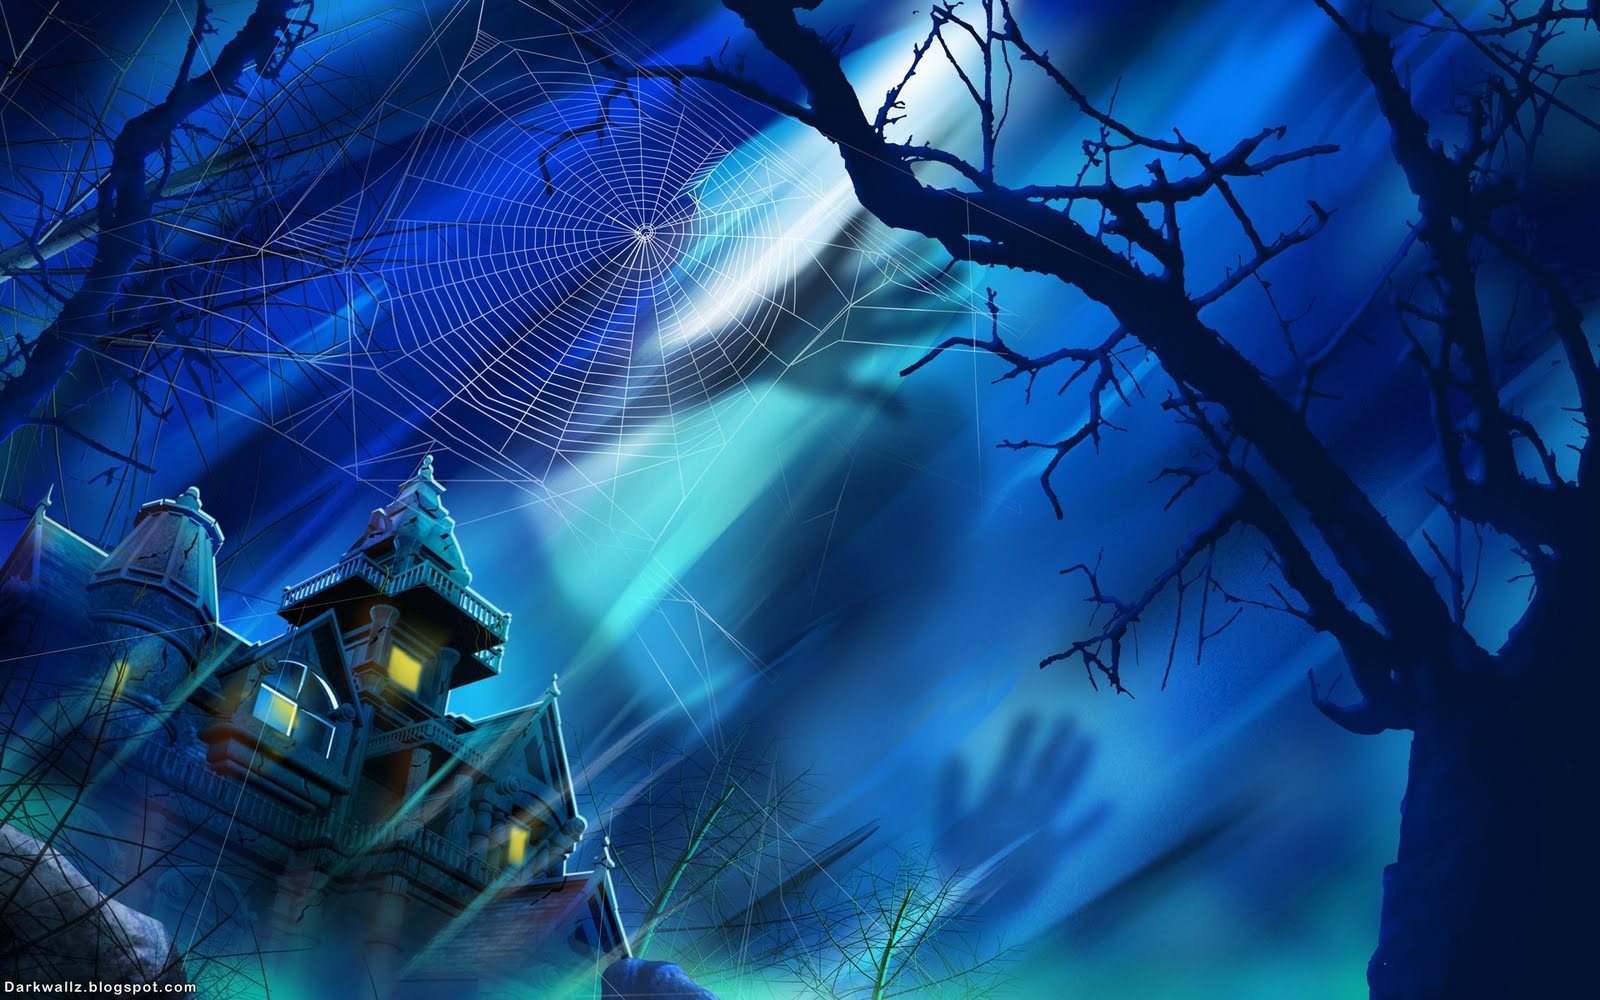 Halloween Wallpapers 59 | Dark Wallpaper Download